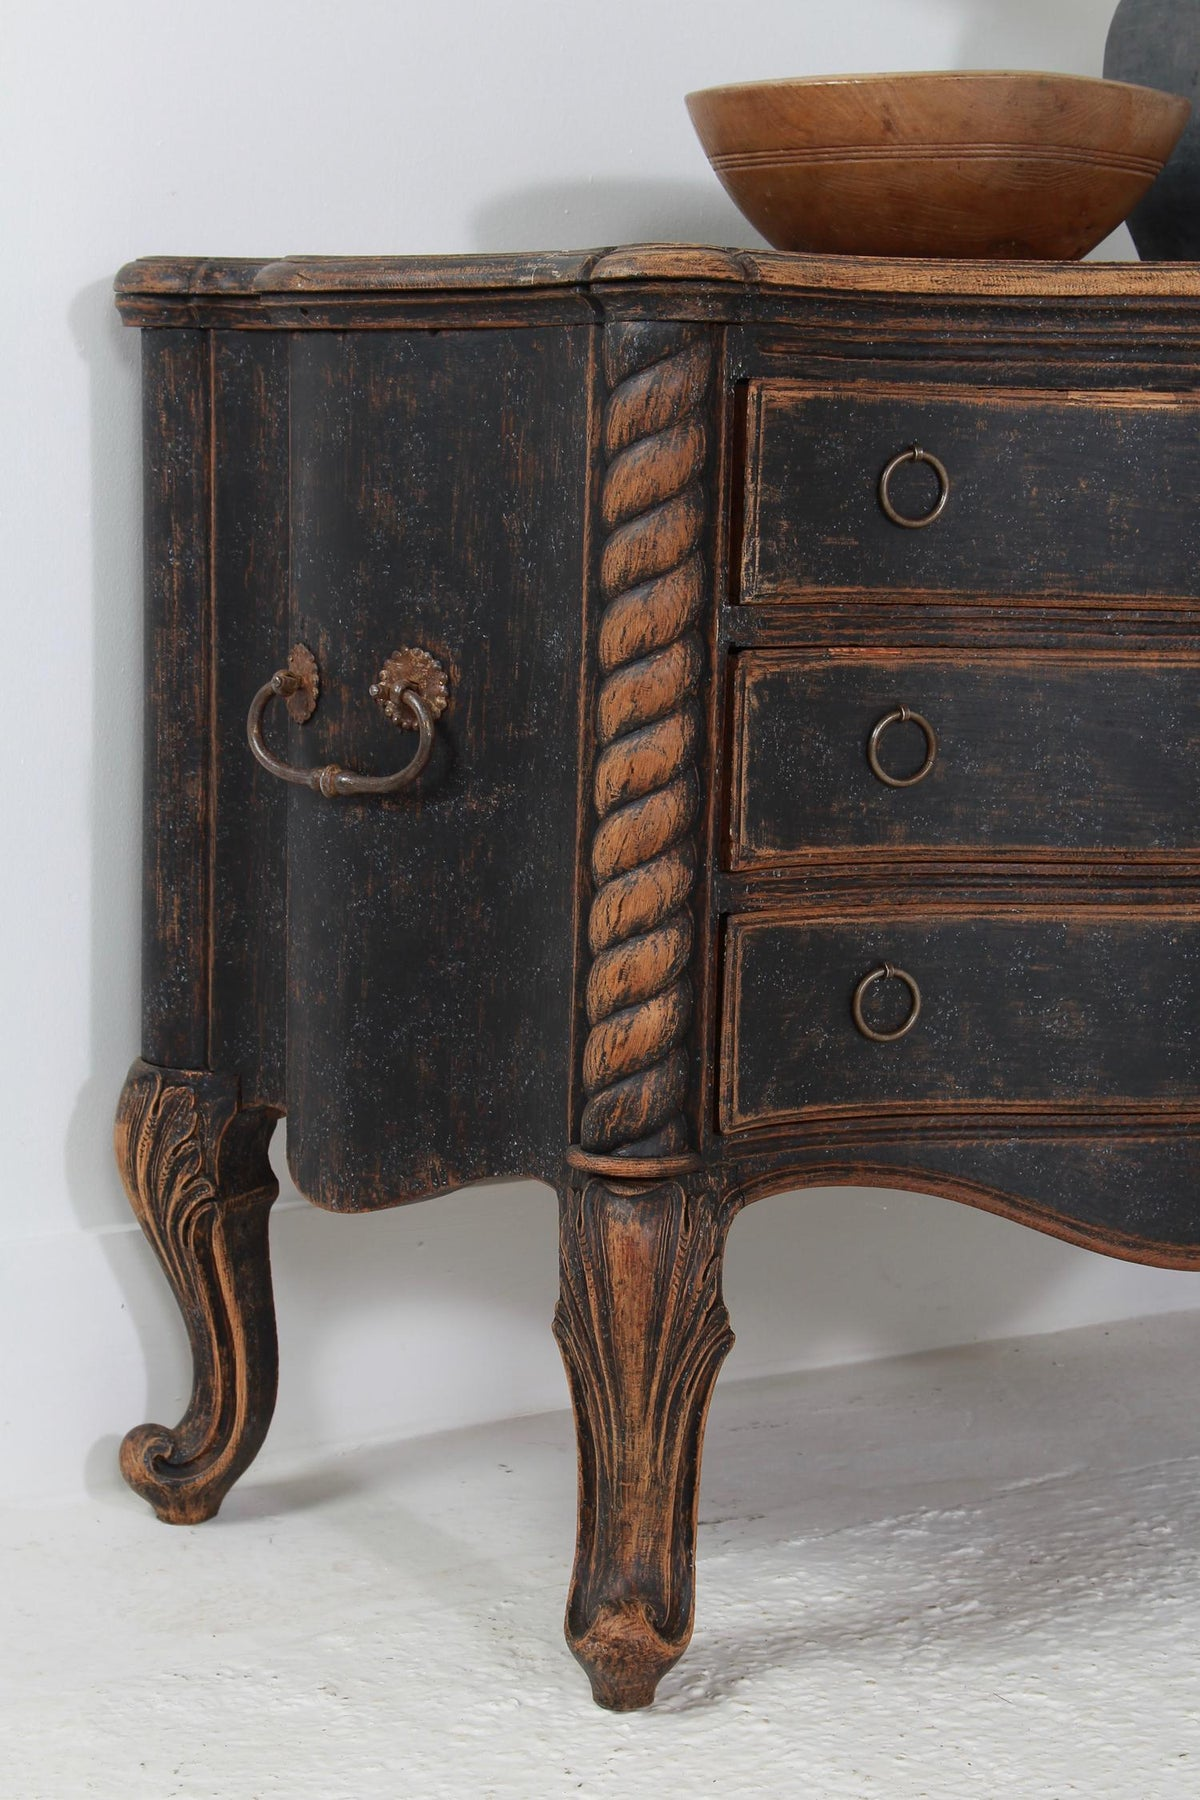 Huge  Sculptural Period Danish 18thC Rococo Commode